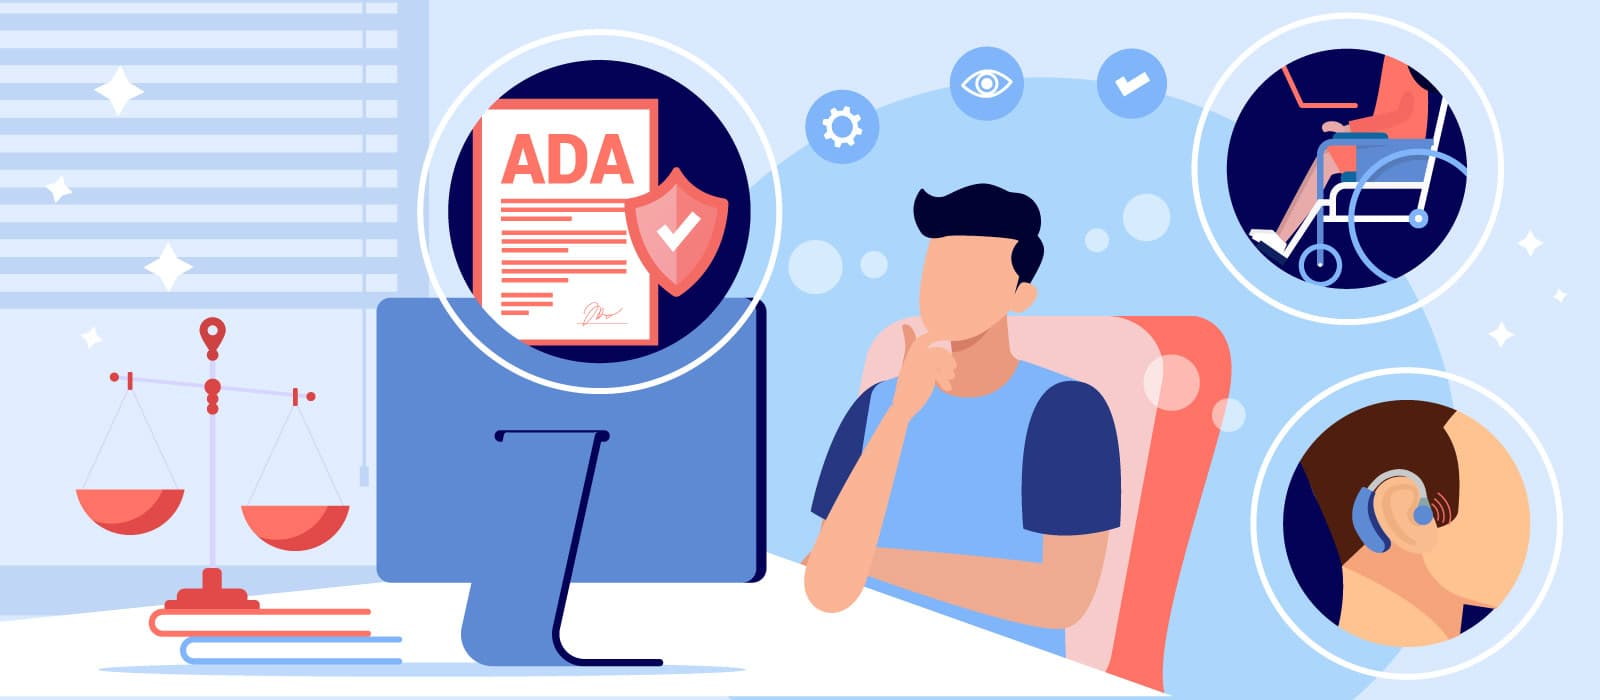 A person in front of a monitor intends to make ADA compliant website in accordance with the requirements